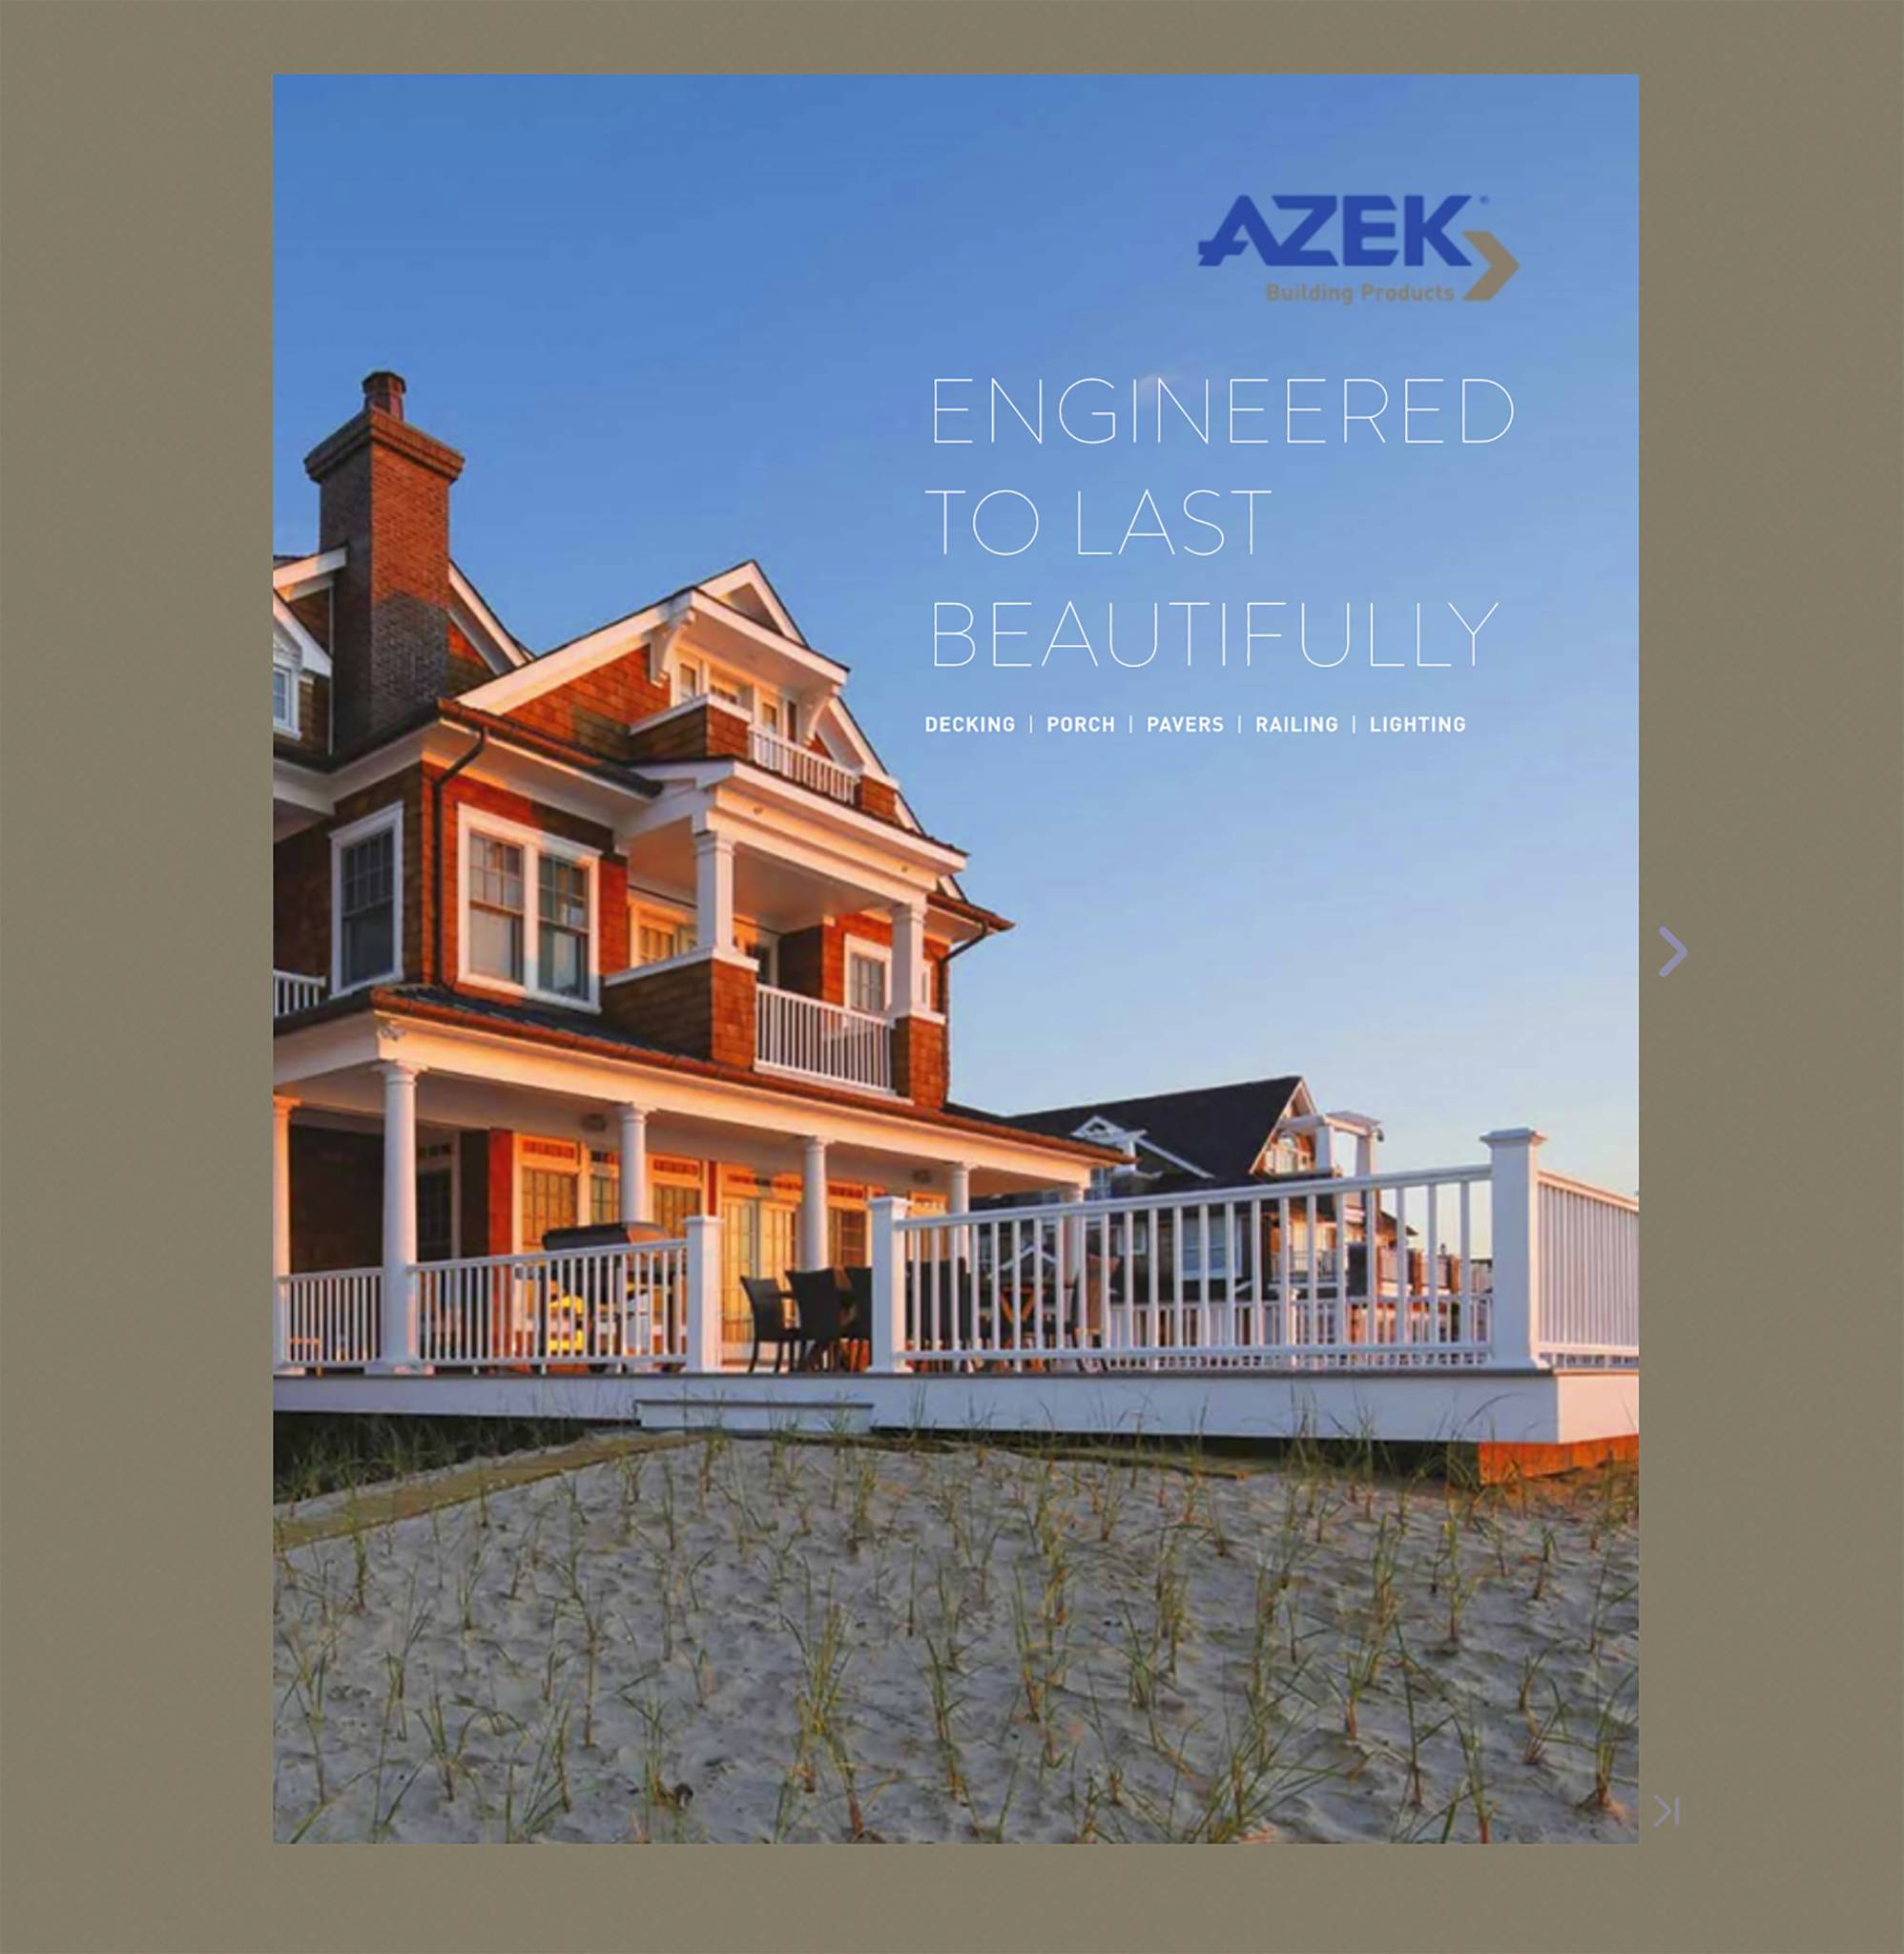 architectural photography Azek residential decking & trim location photography